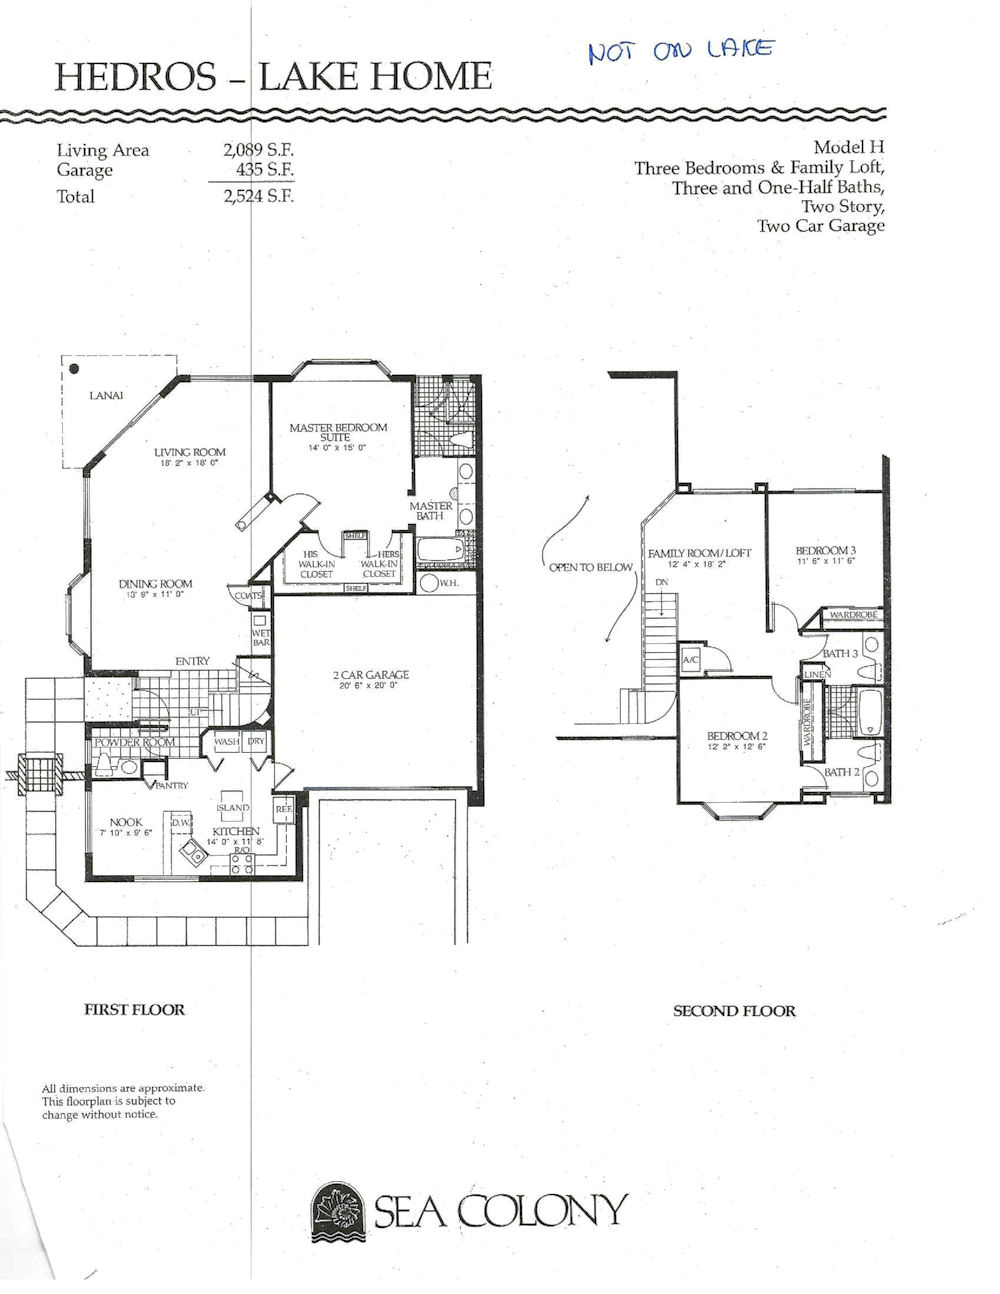 Sea Colony Floor Plans | Sea Colony Jupiter Florida on townhouse blueprints, townhouse community, townhouse master plan, townhouse construction, townhouse renderings, townhouse design, townhouse luxury interior, townhouse deck plans, townhouse home plans with basement, 2 car garage duplex plans, townhouse drawings, garage apartment plans, townhouse rentals, townhouse plans for narrow lots, townhouse elevations, townhouse layout,